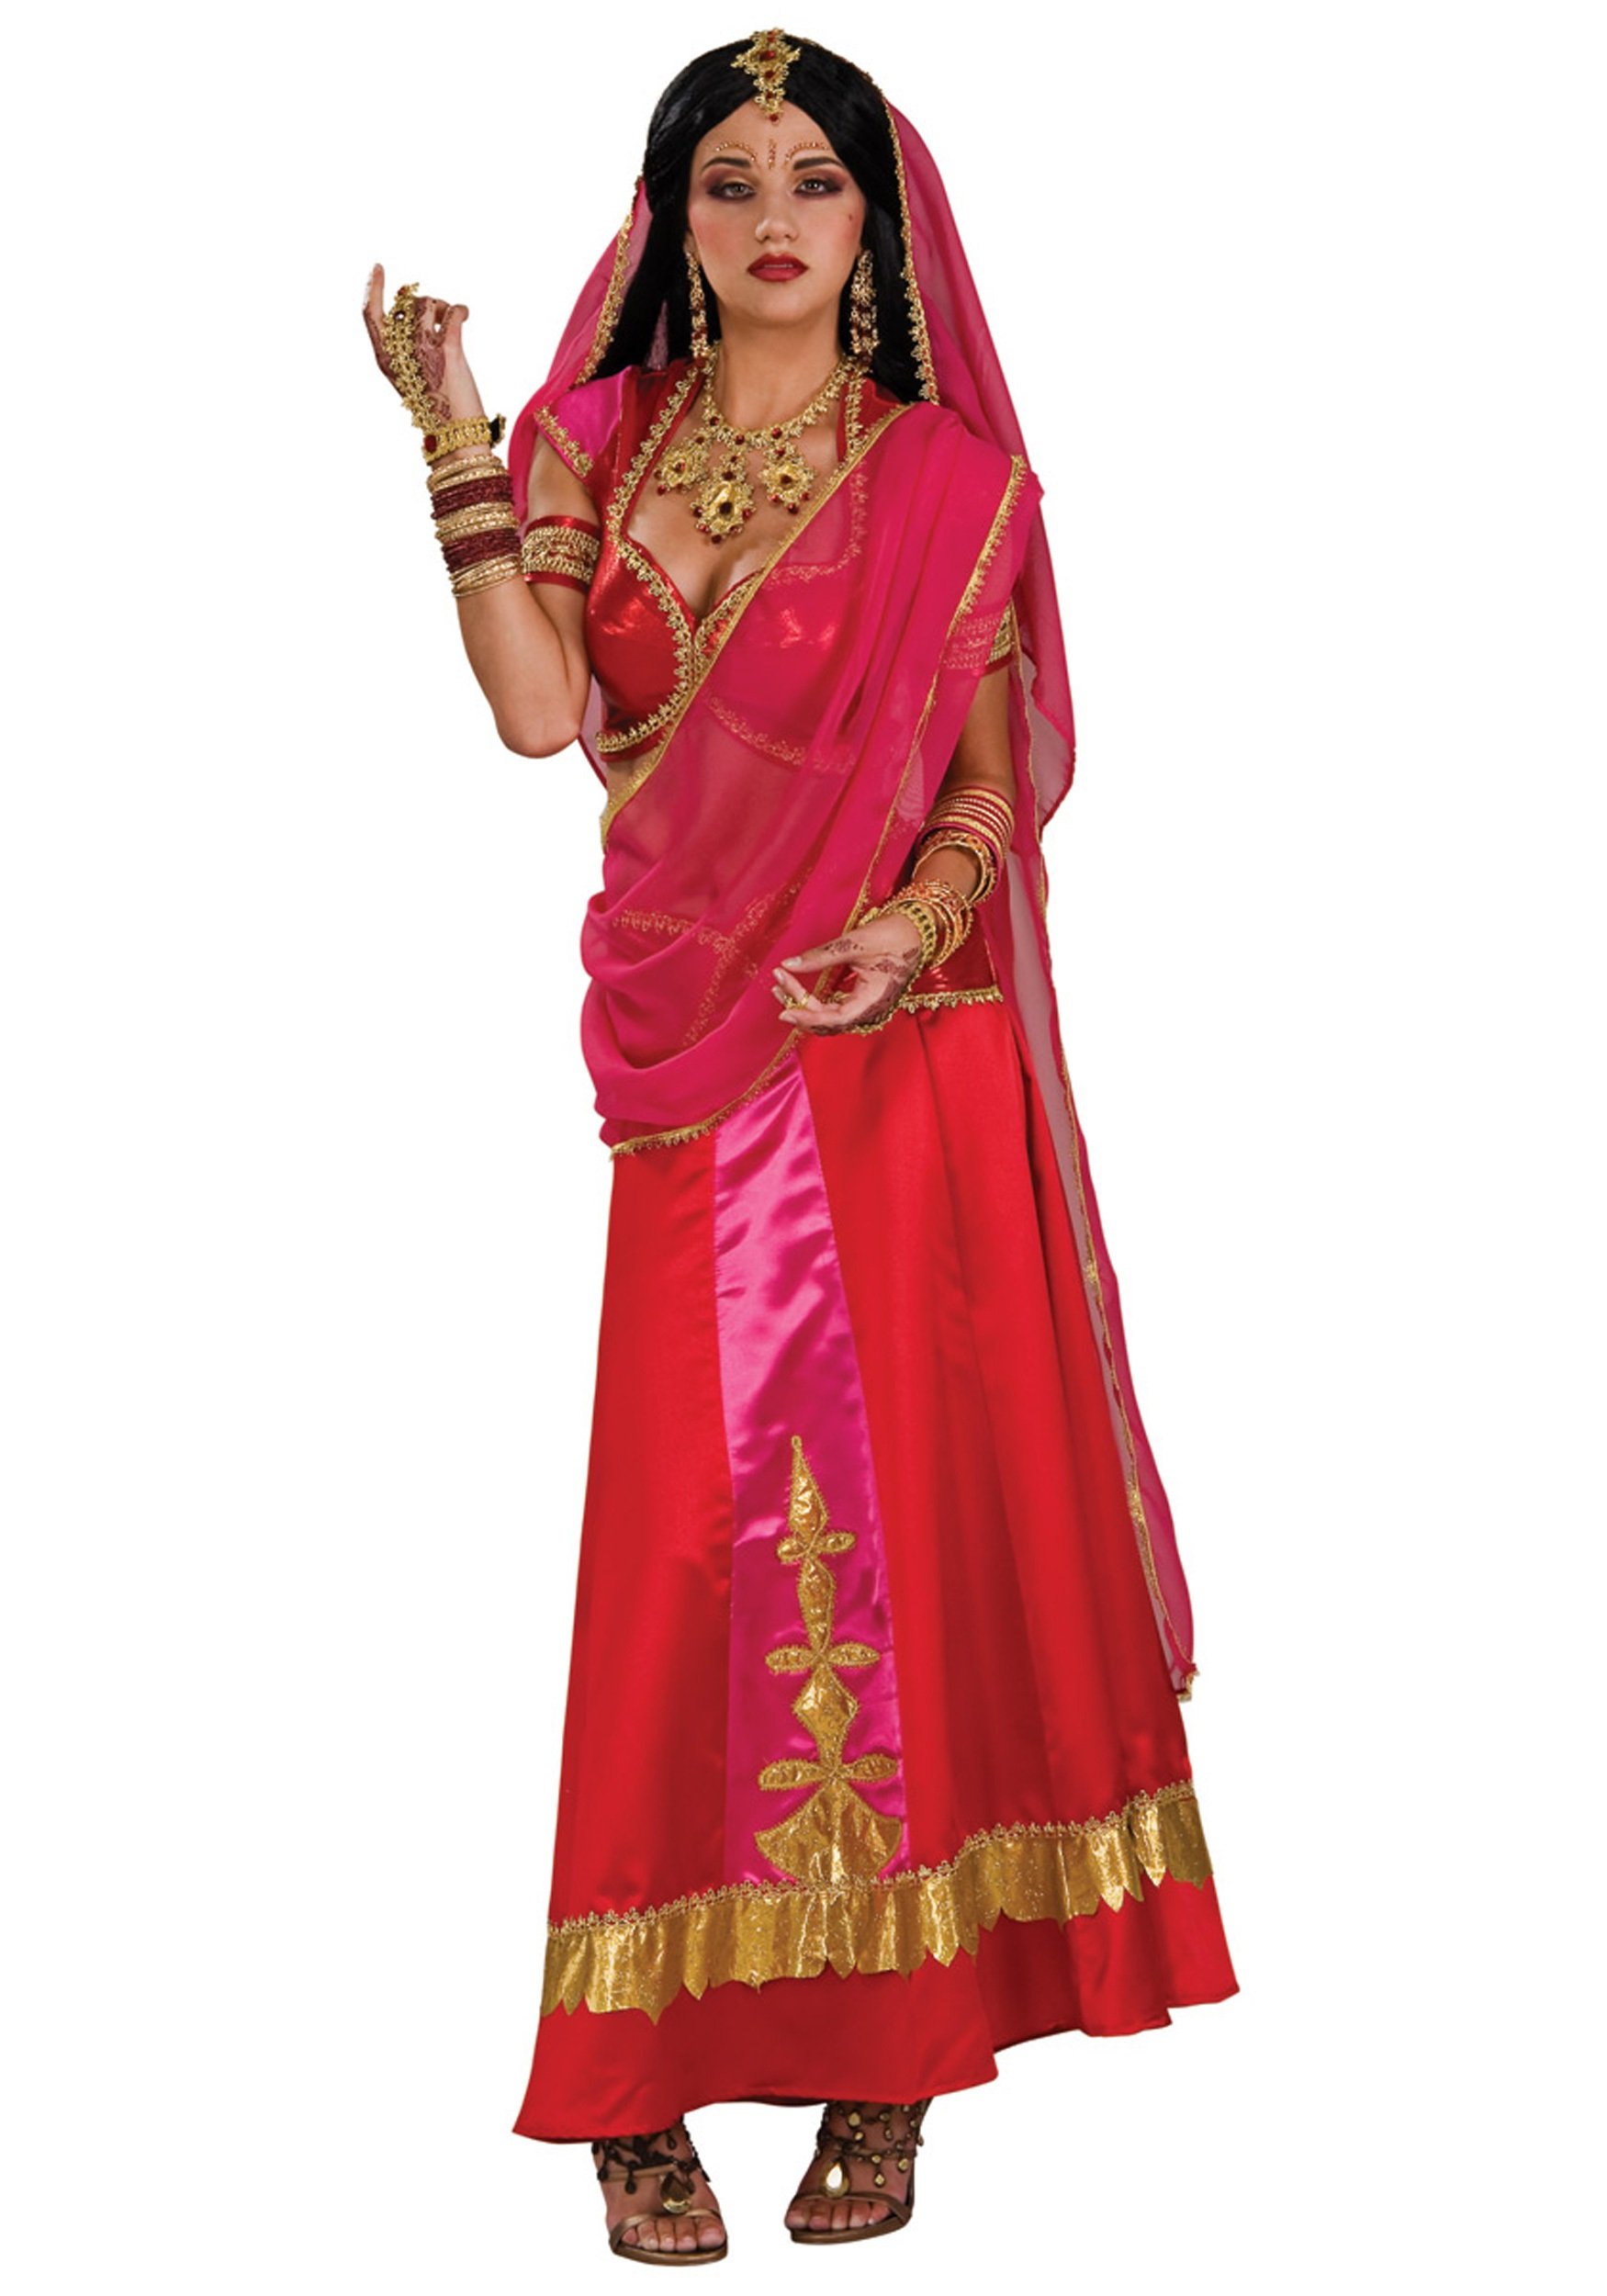 Womens bollywood beauty costume womens bollywood beauty costume solutioingenieria Gallery